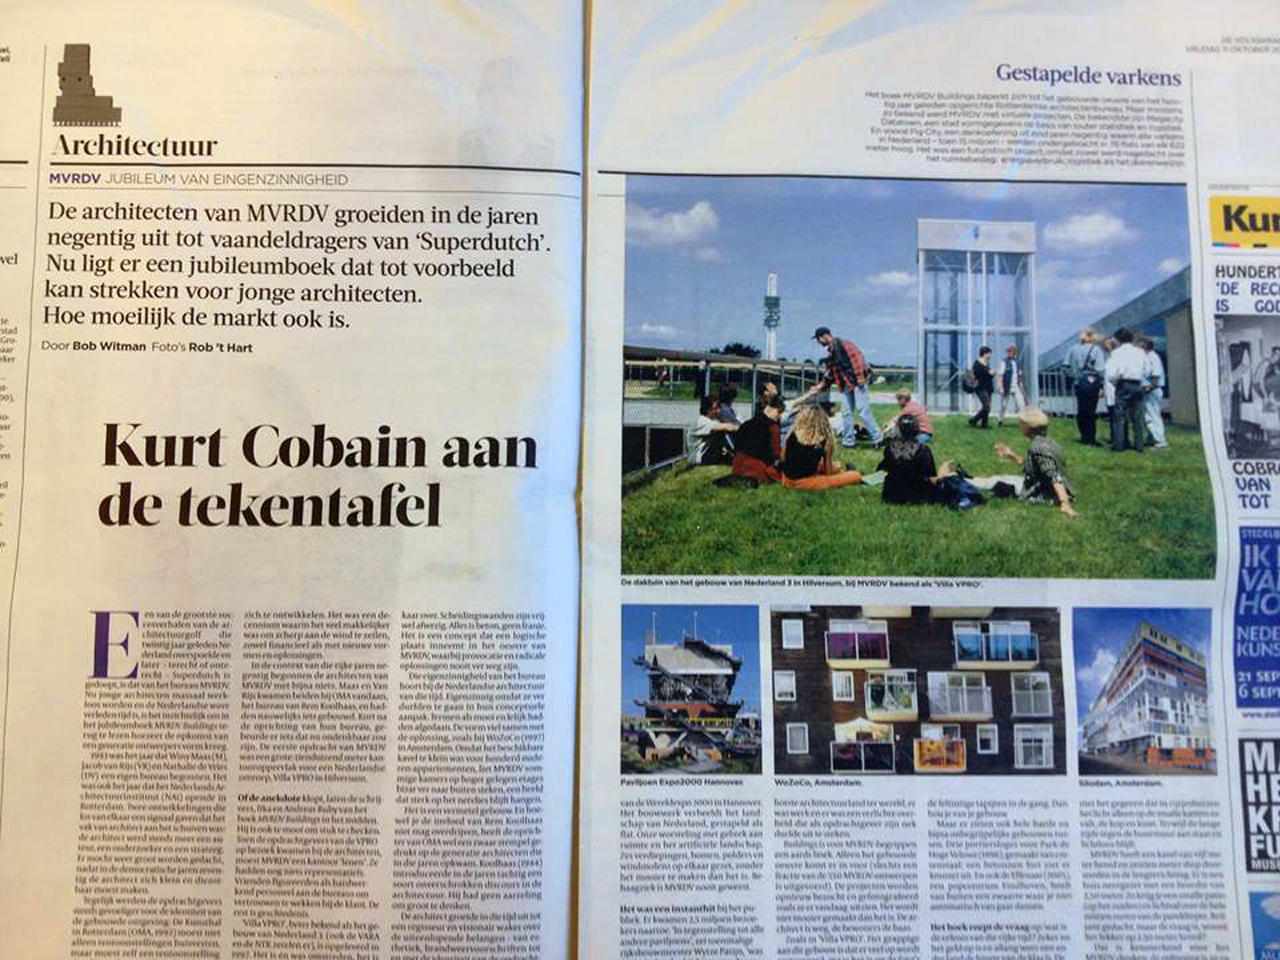 Dutch Newspaper De Volkskrant CALLs MVRDV the Nirvana of the Architecture world